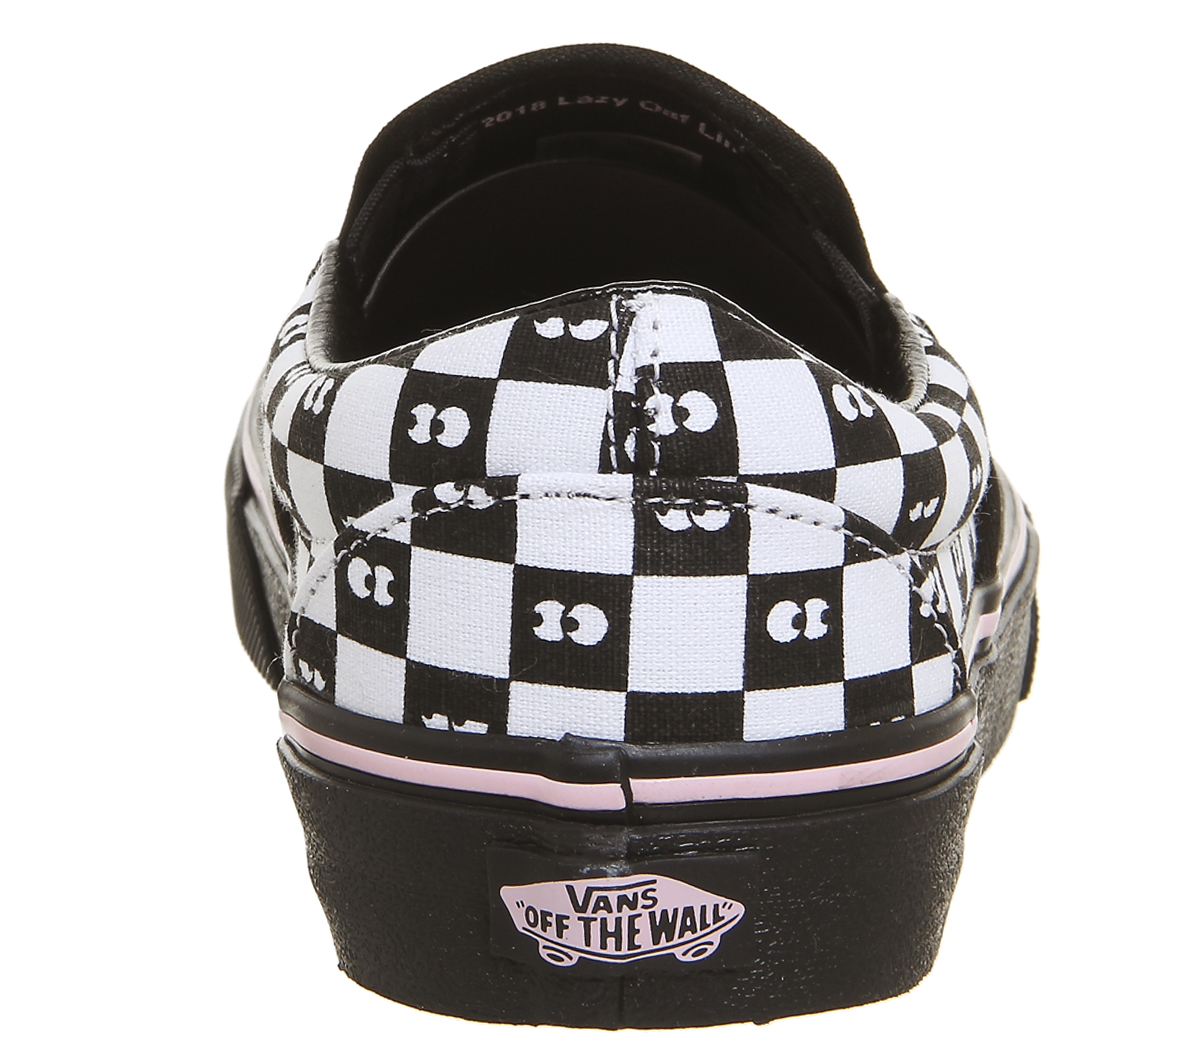 Sentinel Womens Vans Vans Classic Slip On Trainers Lazy Oaf Eyeballs  Checkerboard Trainer fa4888866